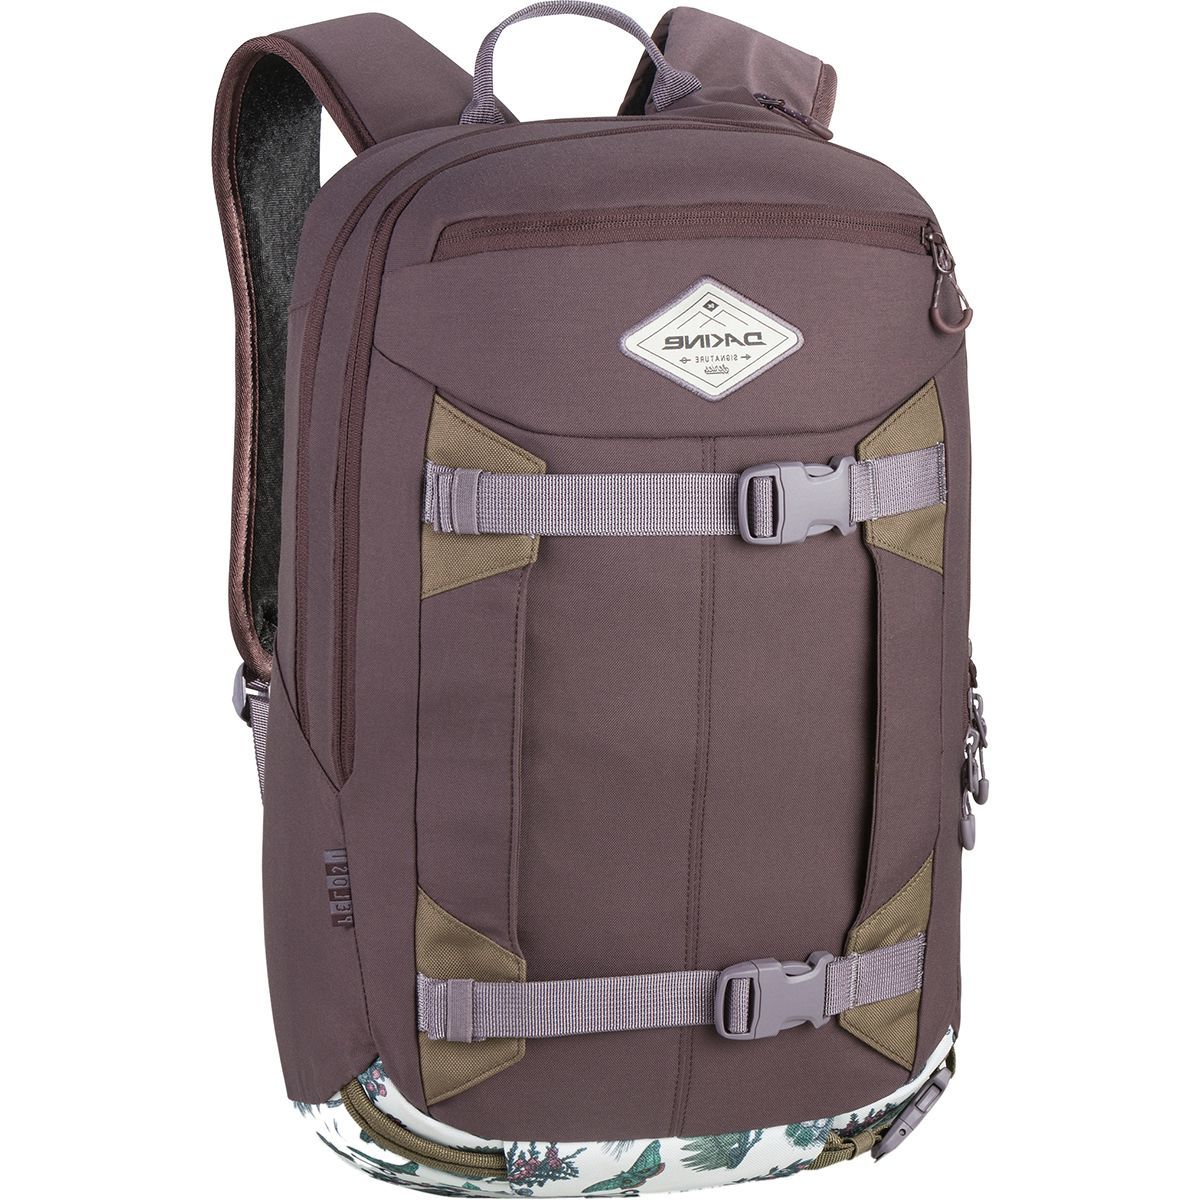 DAKINE Leanne Pelosi Team Mission Pro 25L Backpack - Women's